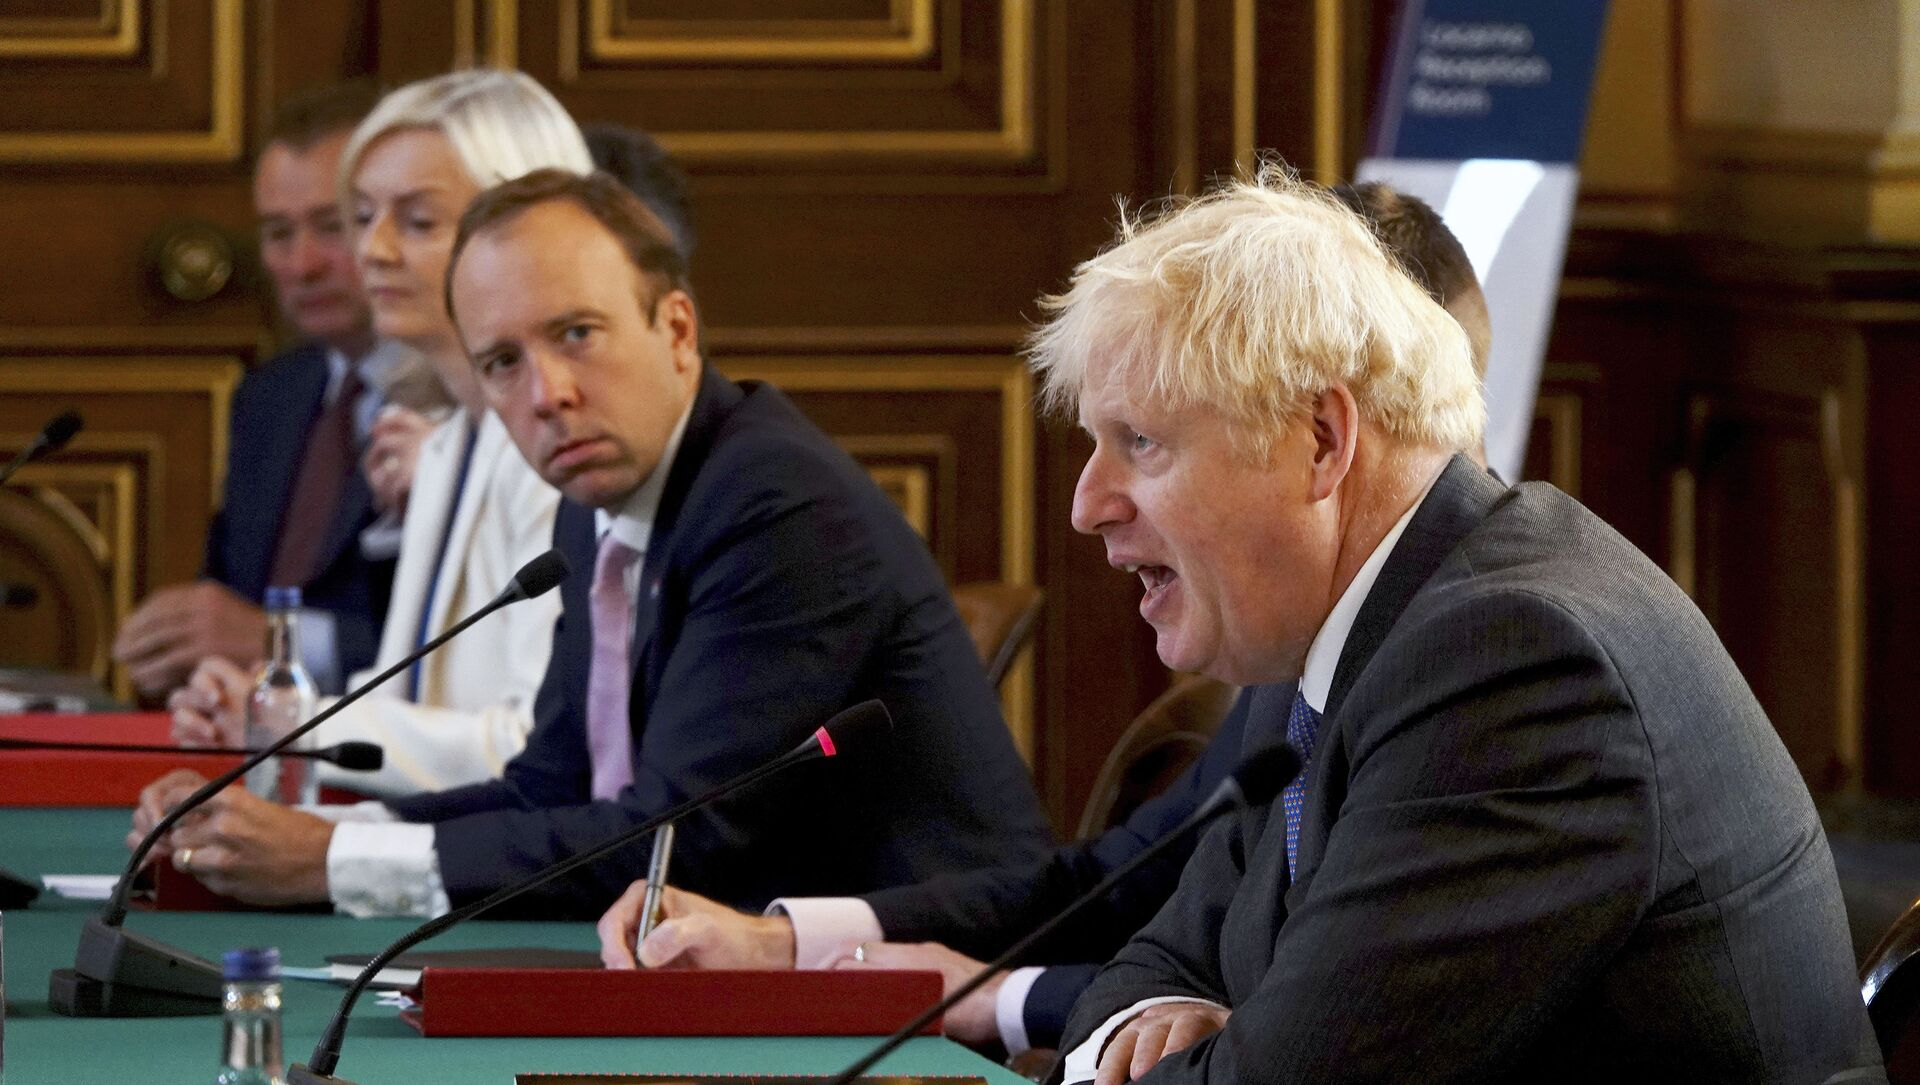 Britain's Prime Minister Boris Johnson, right, chairs a socially distanced government Cabinet meeting at the Foreign and Commonwealth Office (FCO) in London, Tuesday Sept. 15, 2020. - Sputnik International, 1920, 26.06.2021